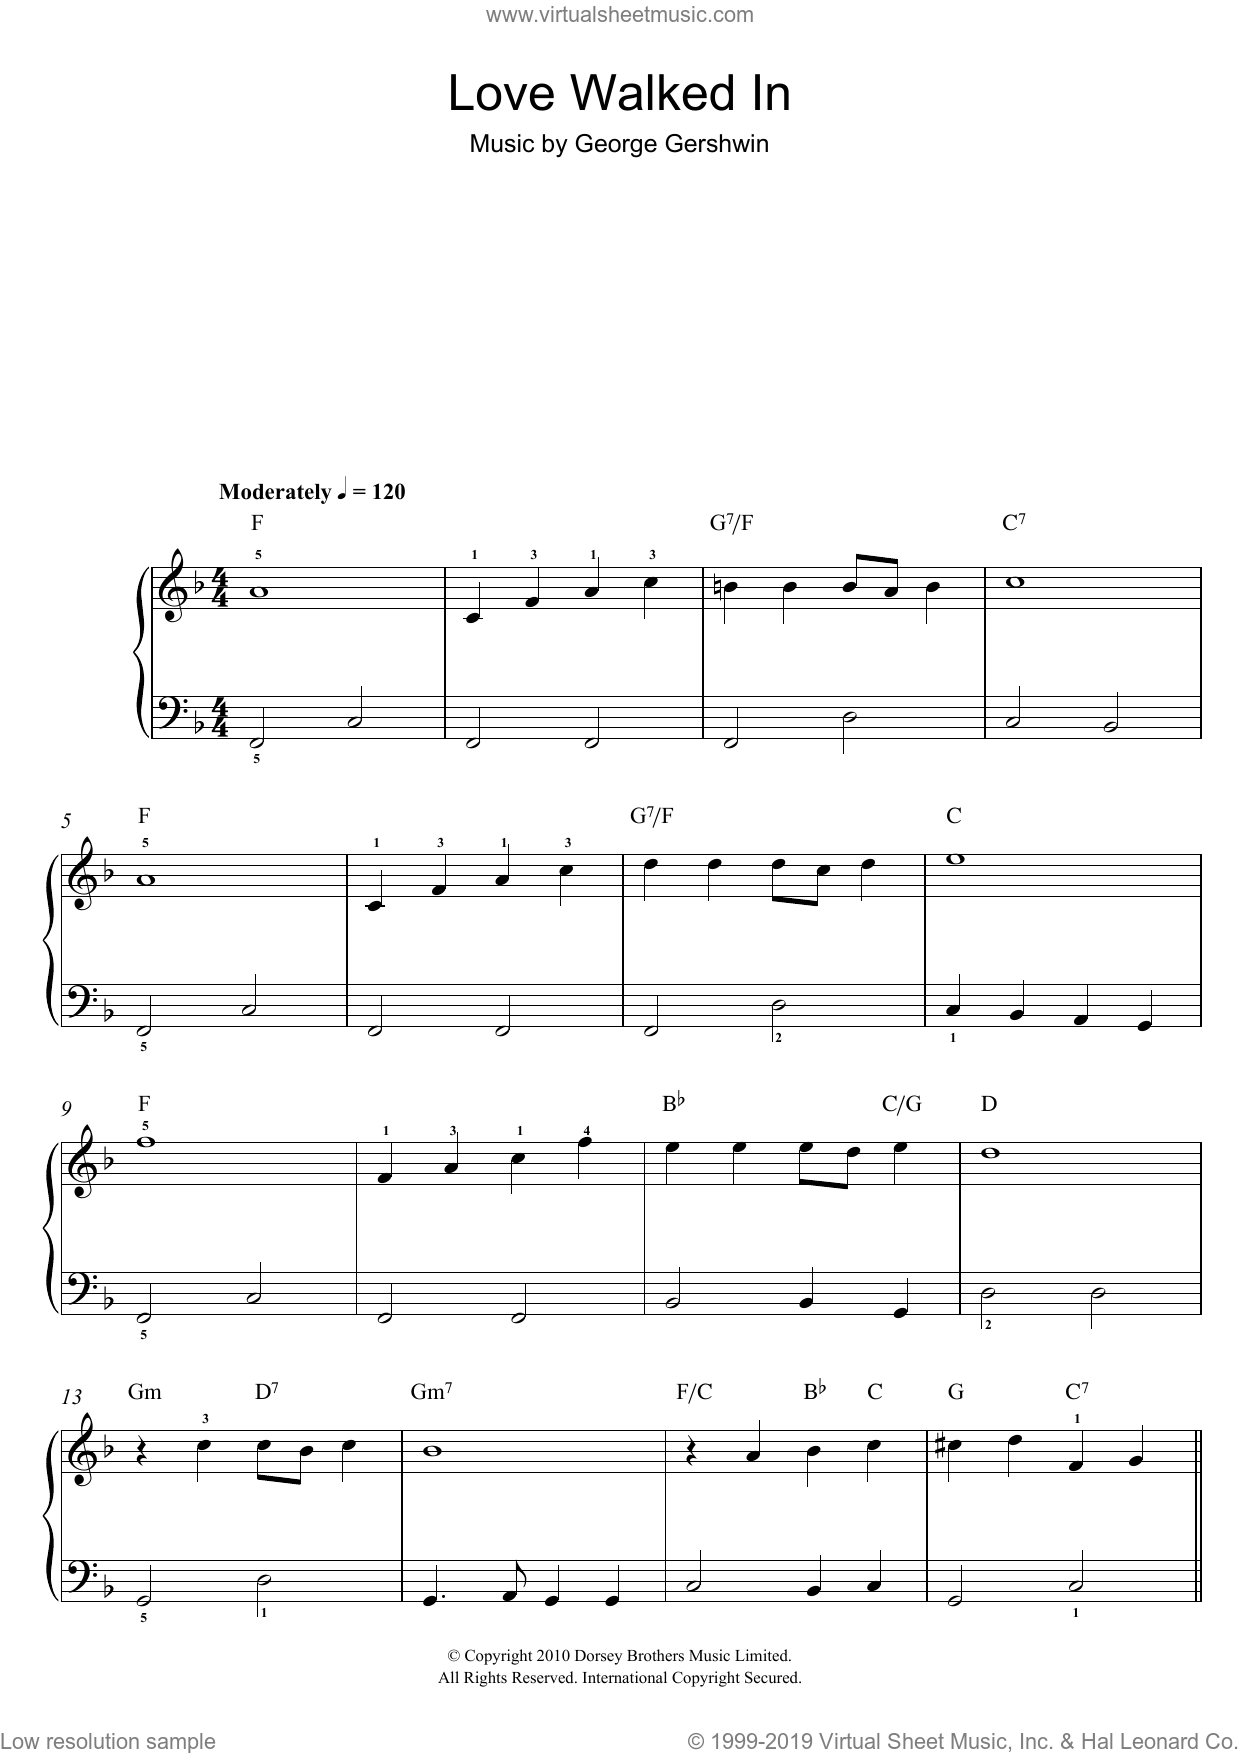 Love Walked In sheet music for piano solo (chords) by George Gershwin